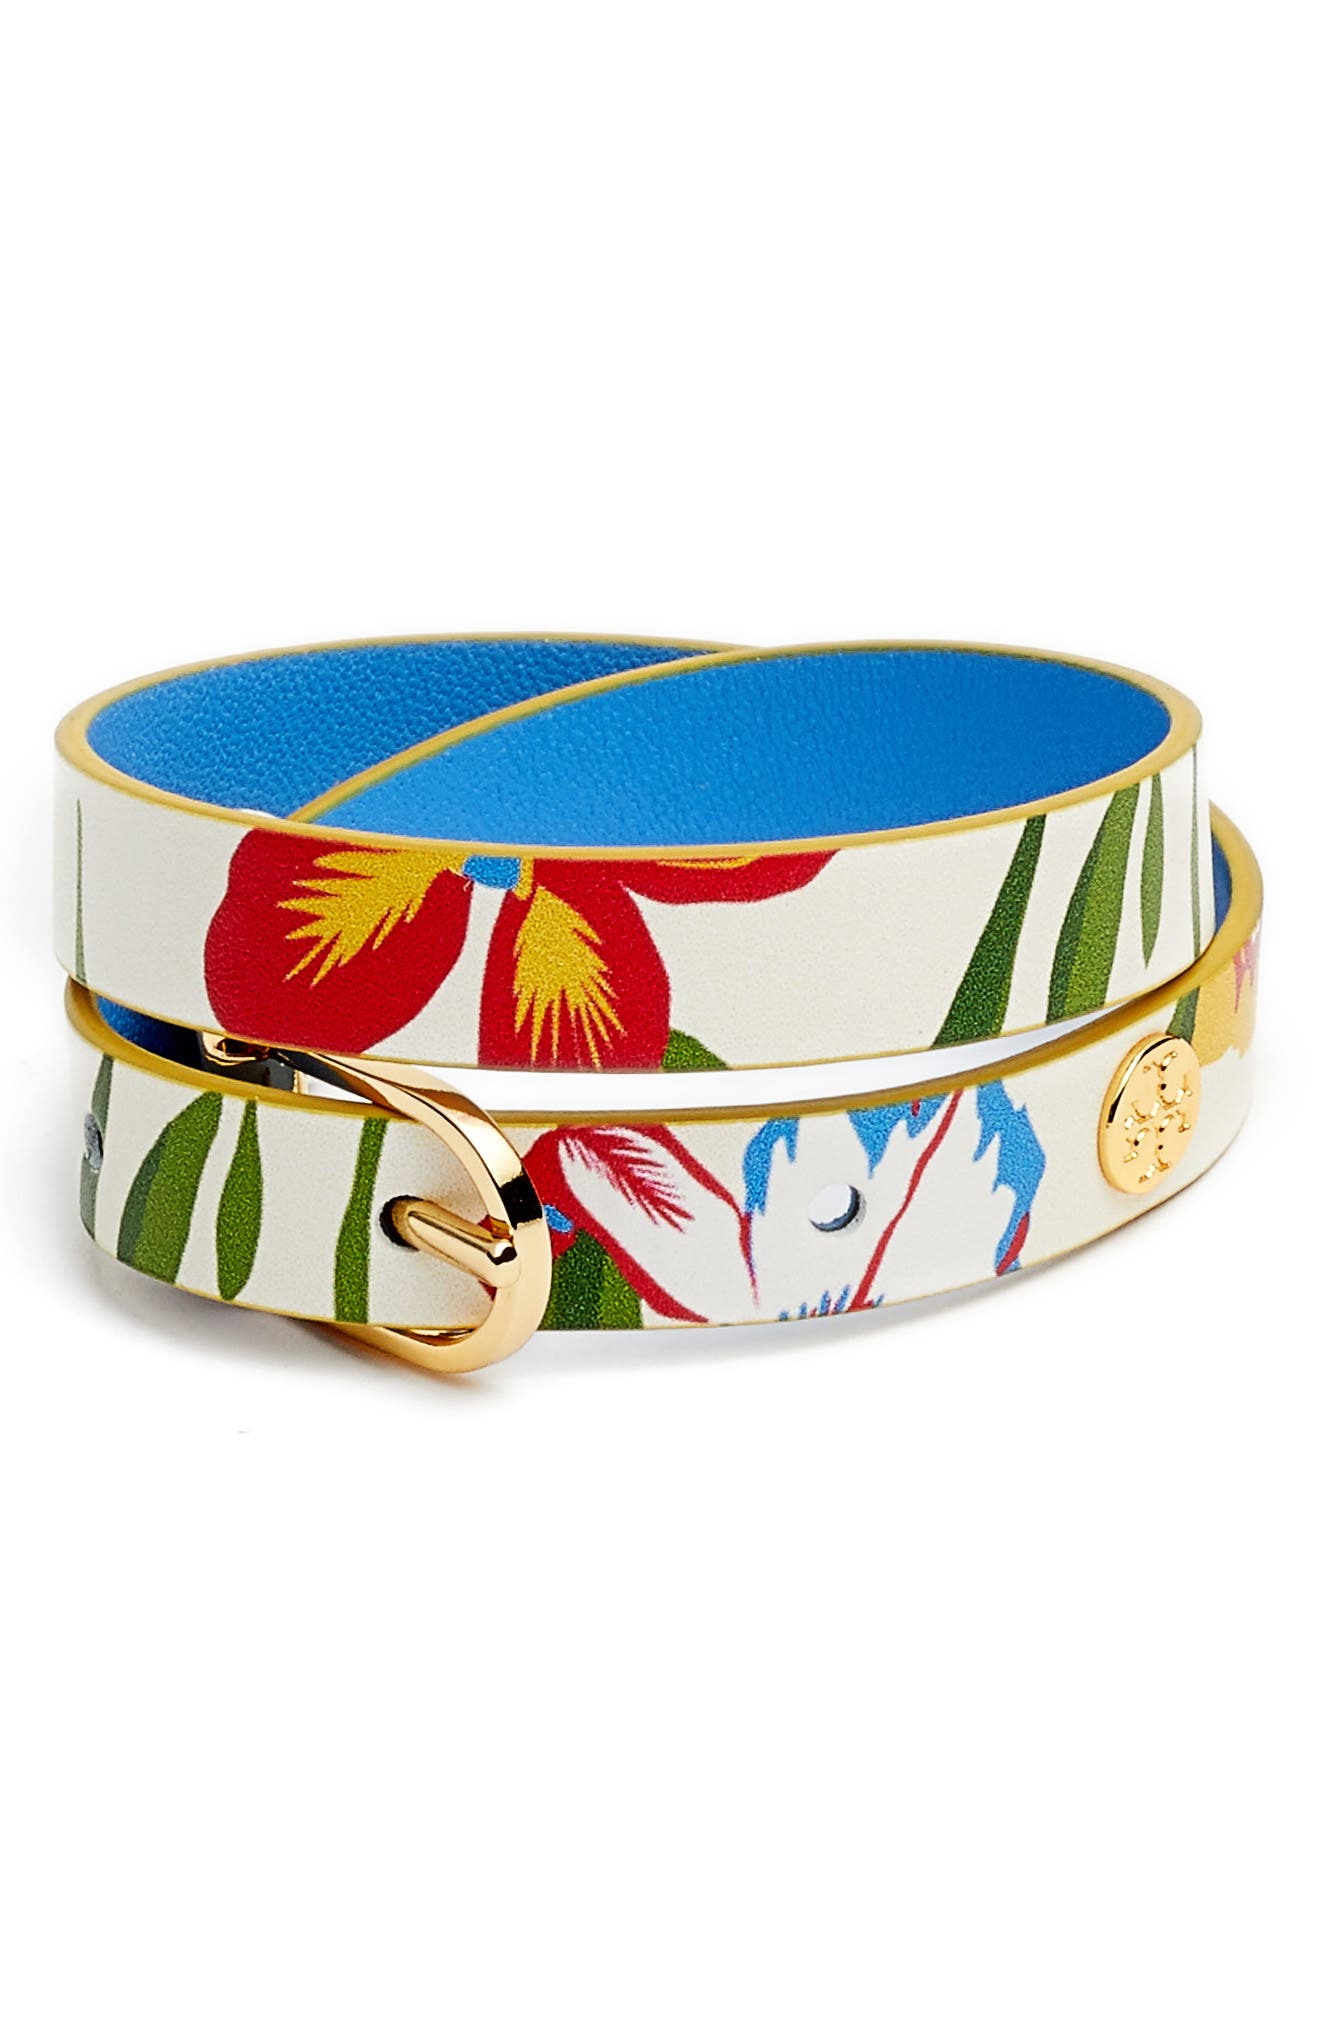 Tory Burch Reversible Leather Double Wrap Bracelet